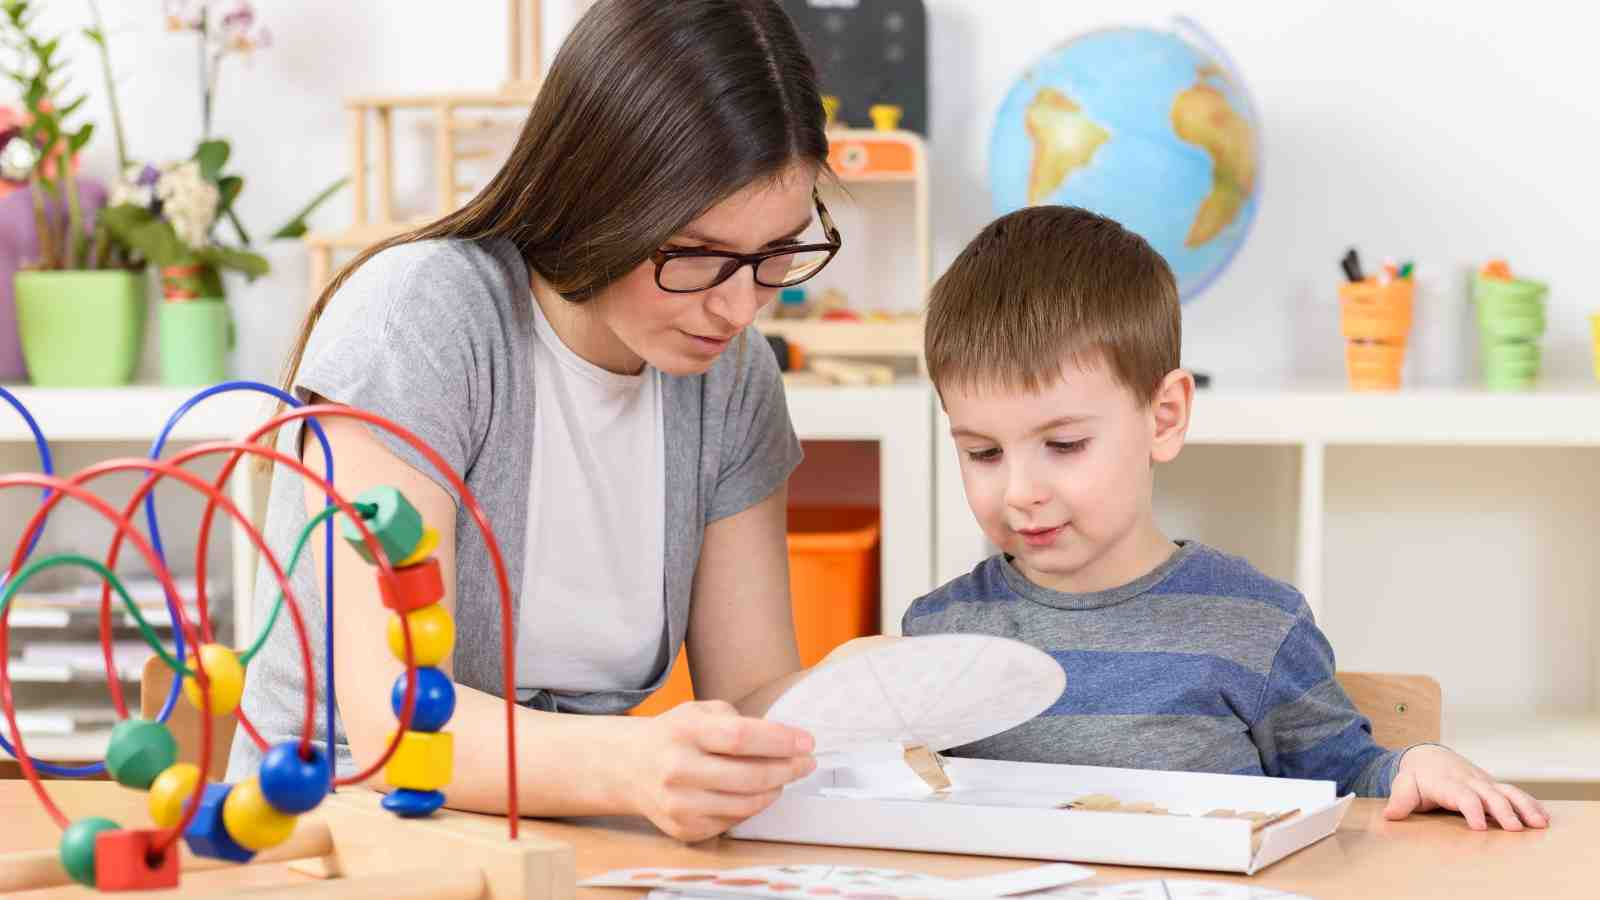 School teacher with child investigating puzzles